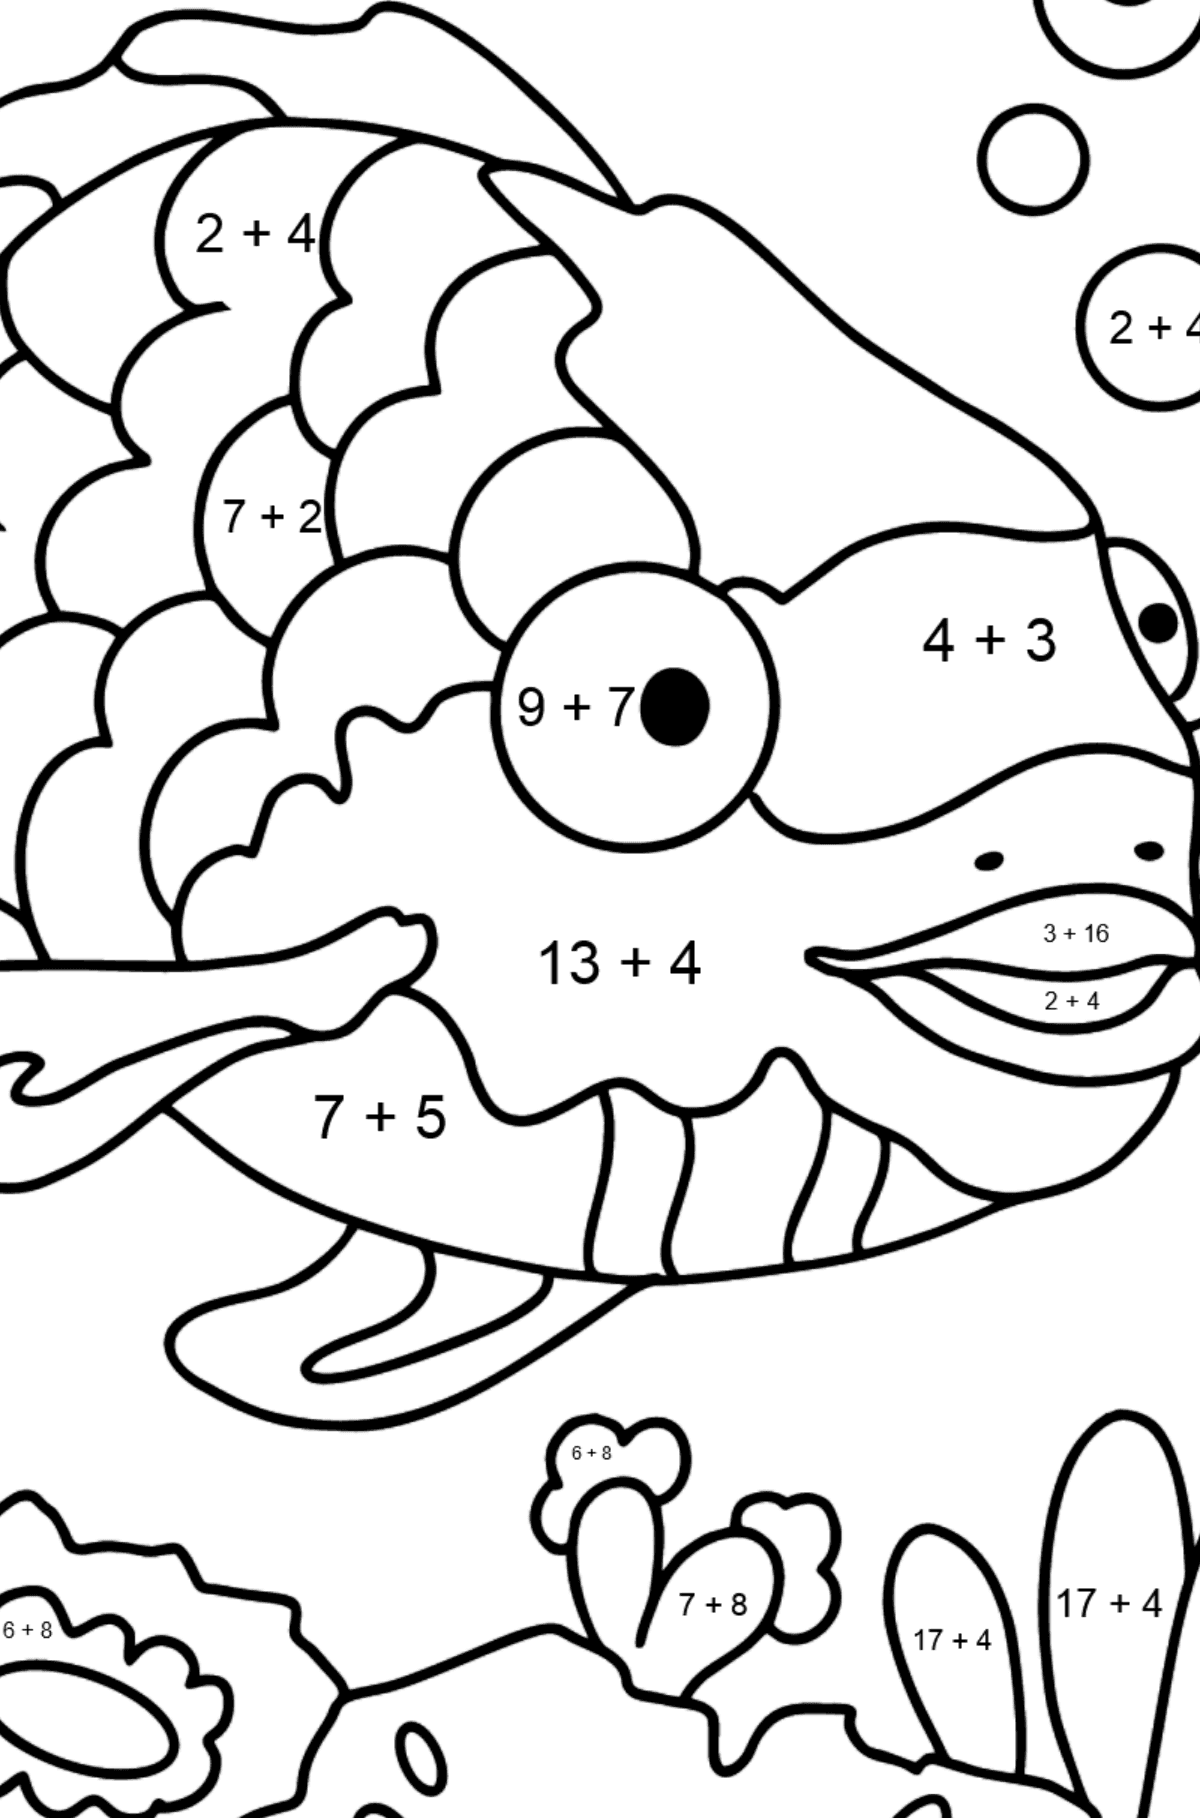 Coloring Page - A Fish with Beautiful Scales - Math Coloring - Addition for Kids